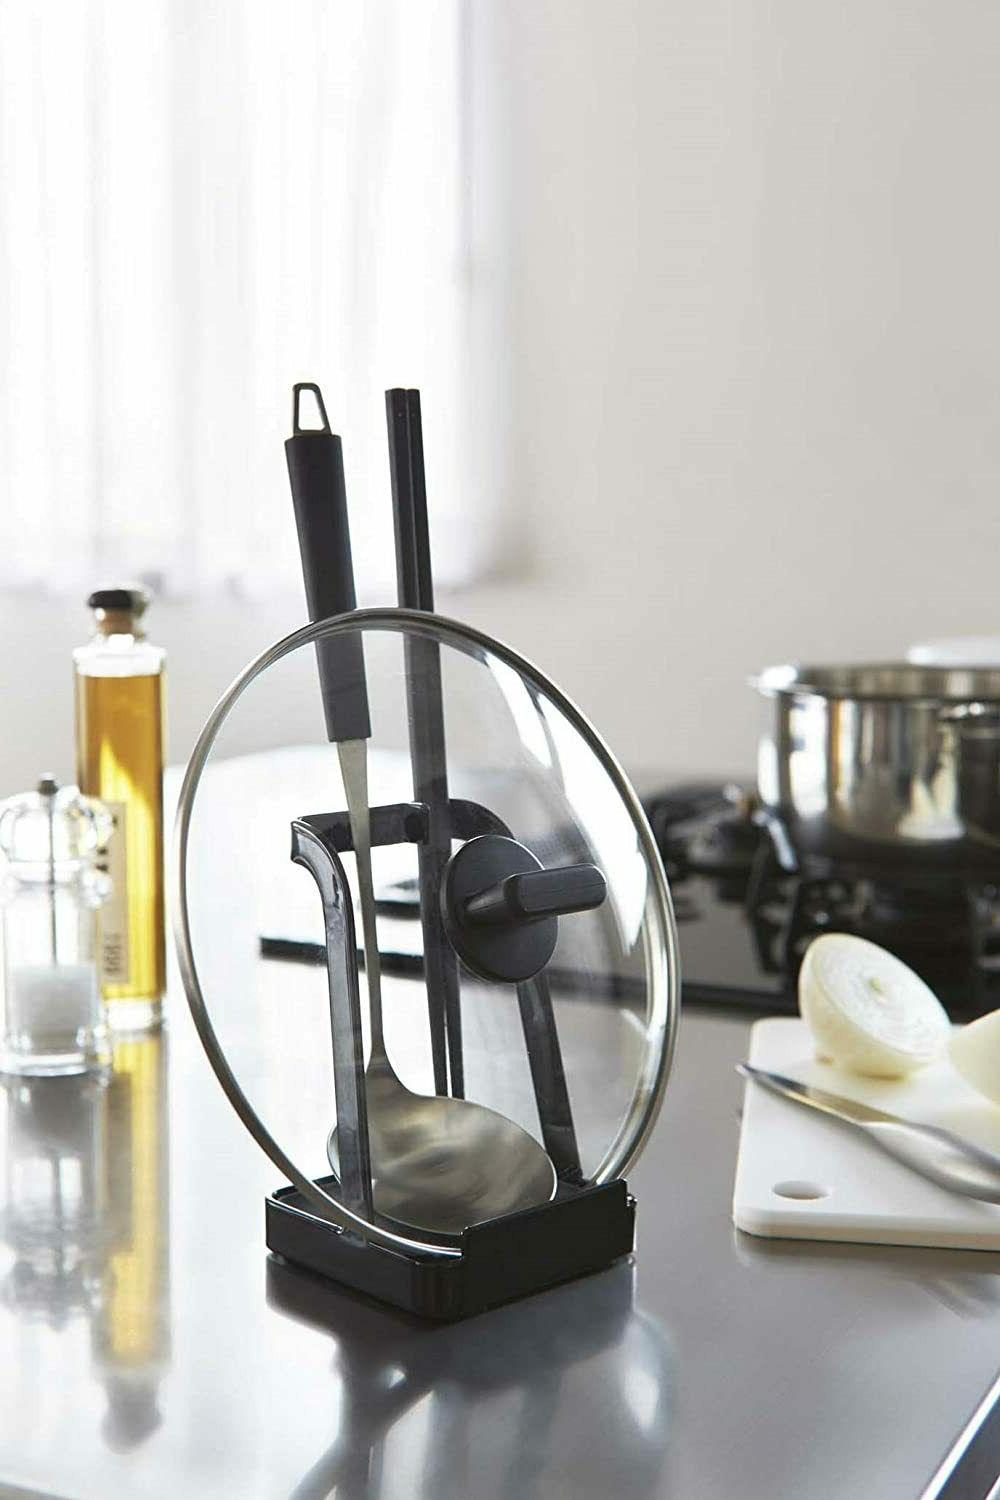 YAMAZAKI 2249 Ladle Holder-Lid Stand for Utensils in Black